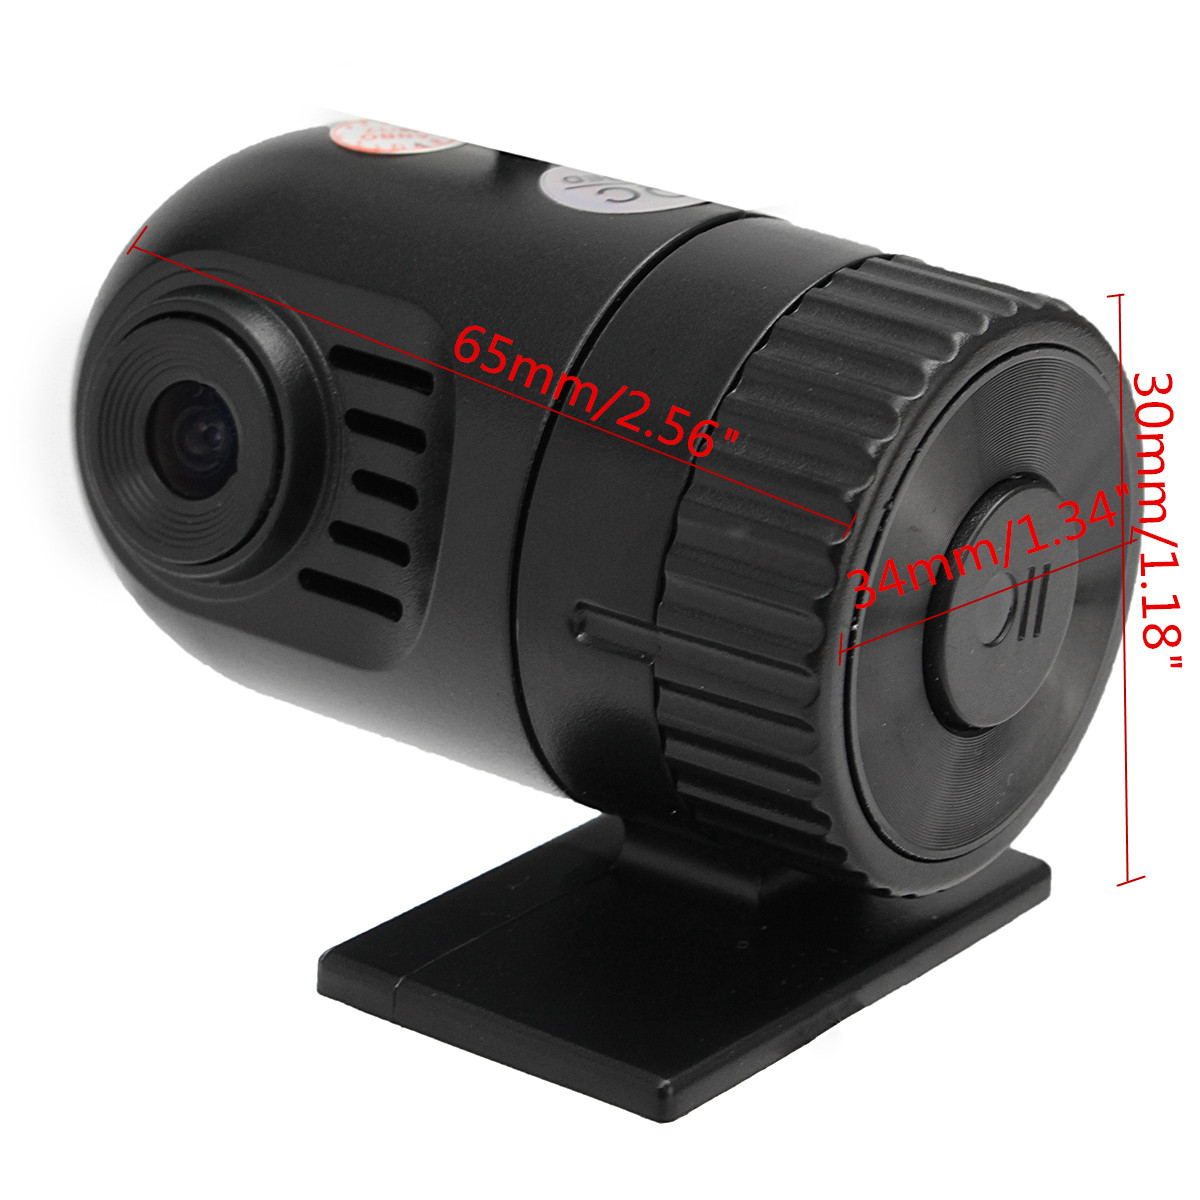 1280*720 HD Mini Car DVR Video Recorder Hidden Dash Cam Vehicle Spy Camera Night Vision